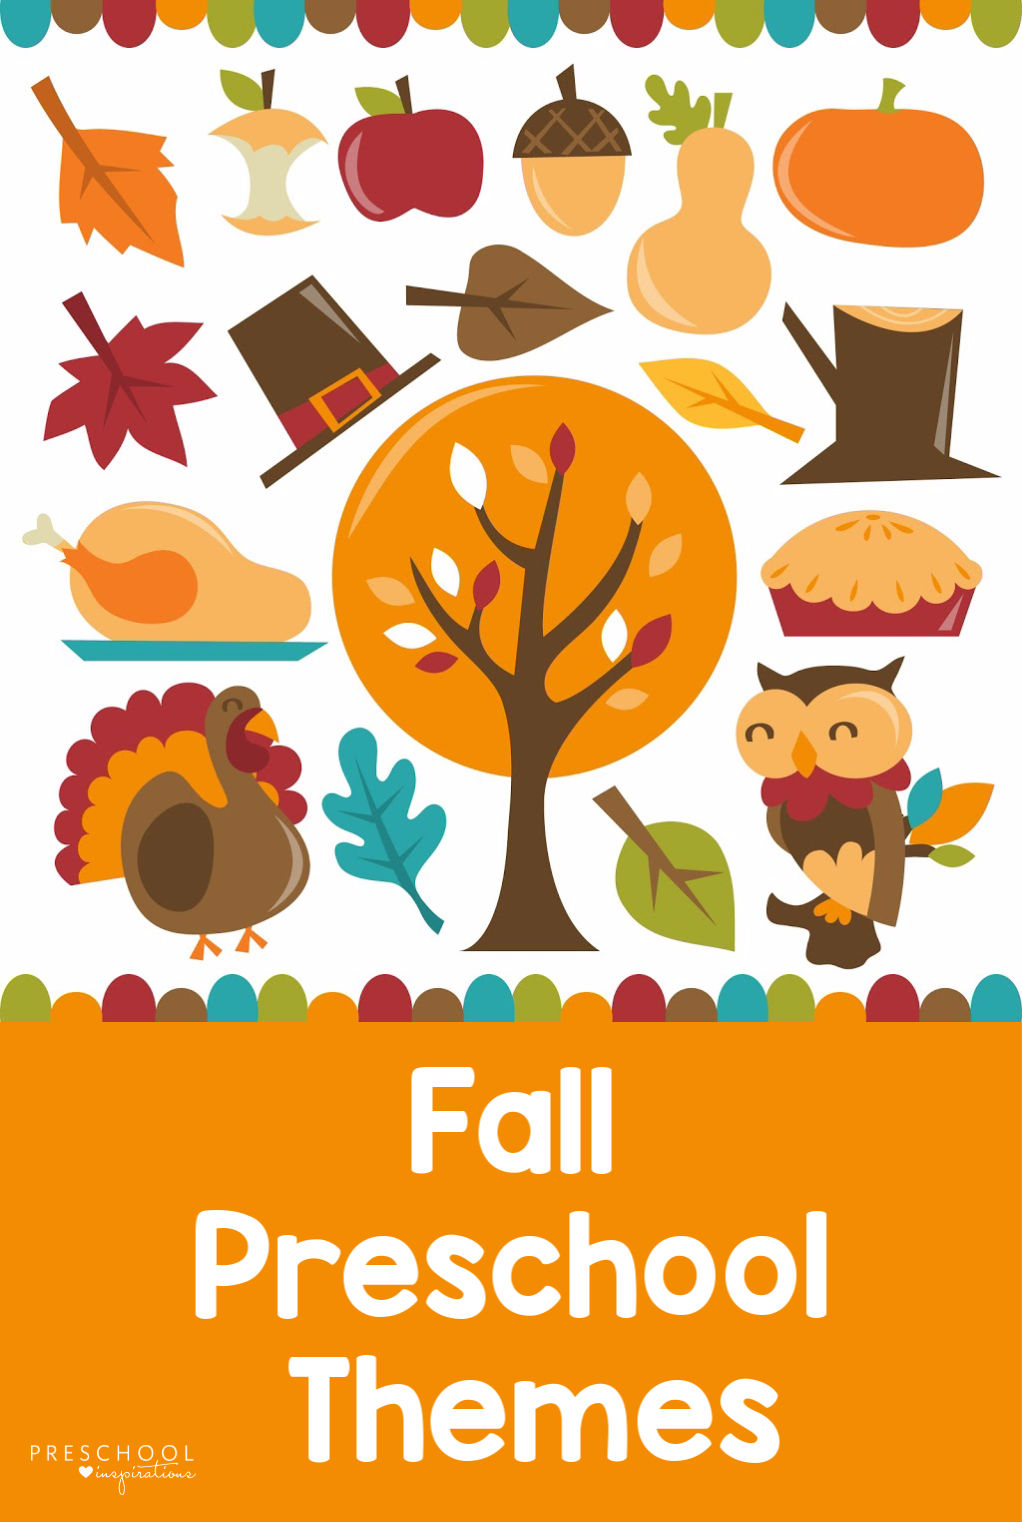 A great list of preschool themes for fall! You'll also find tons of activity and craft ideas, fall lesson plans, fall songs, and more! #preschoolinspirations #preschool #fall #fallcrafts #prek #fallactivities